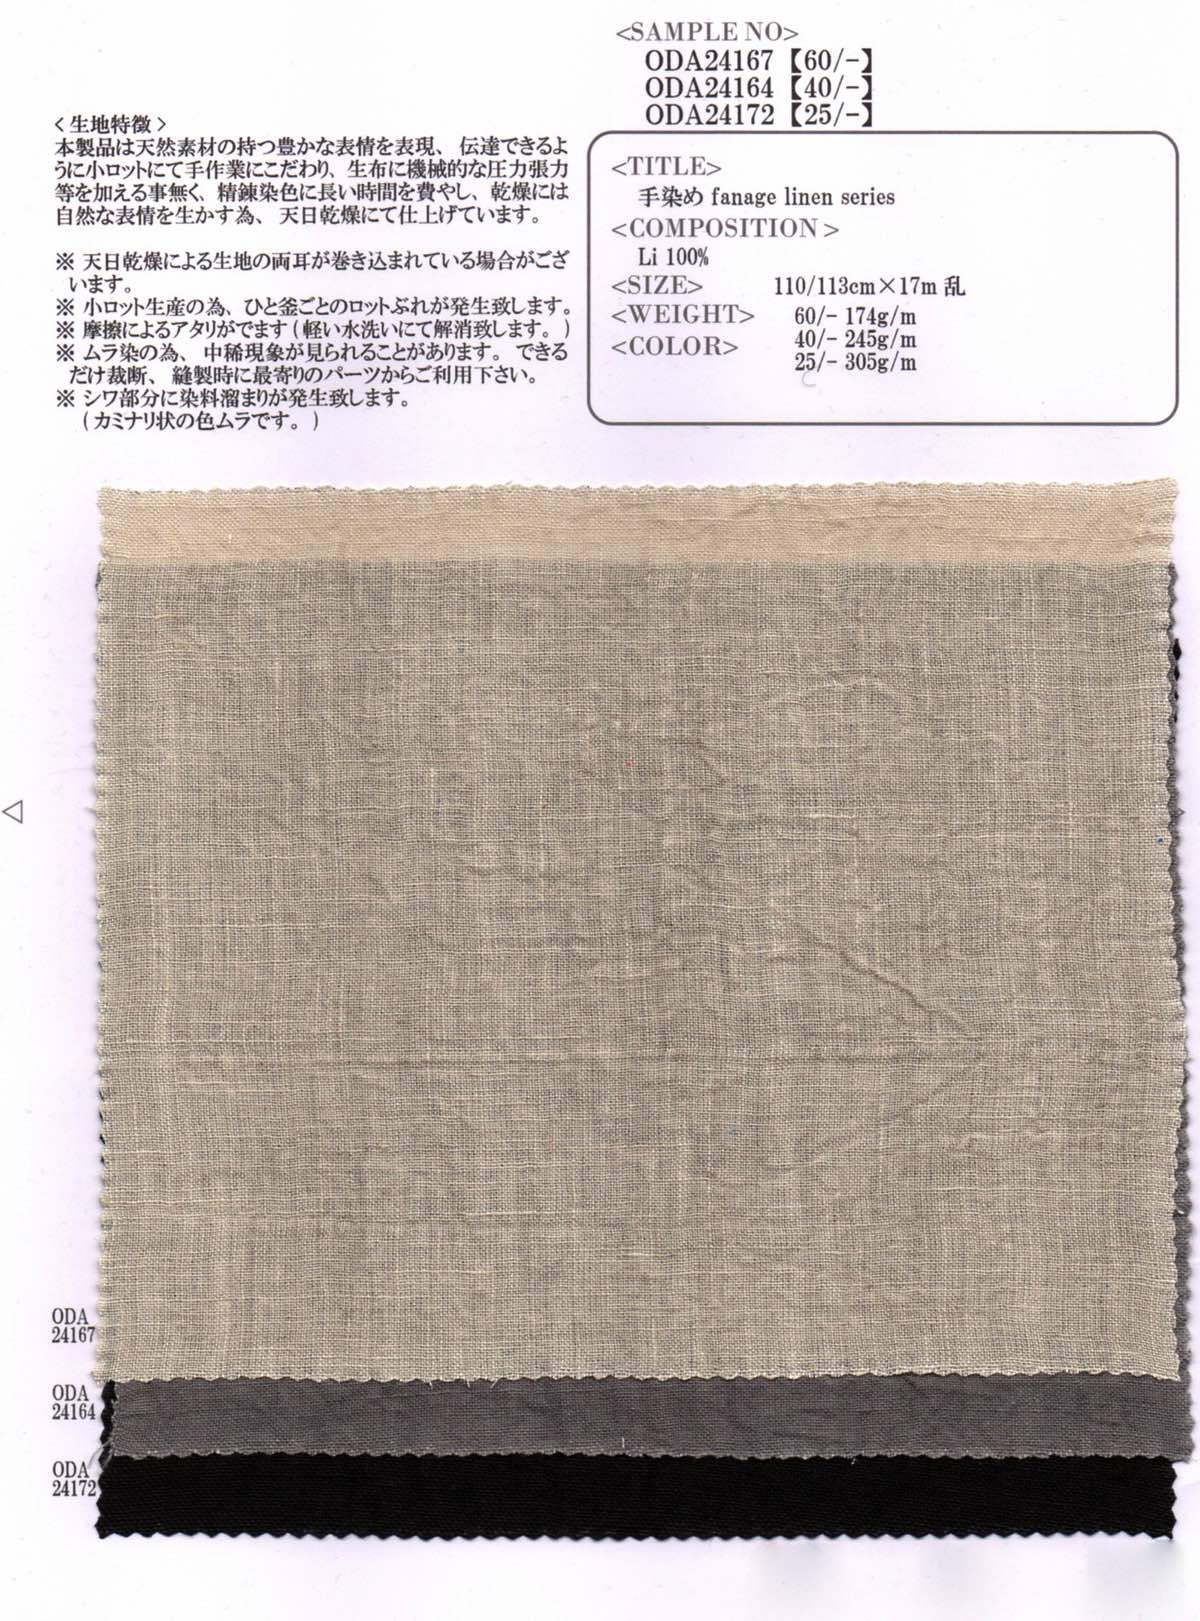 手染めfanage linen series【25/-】